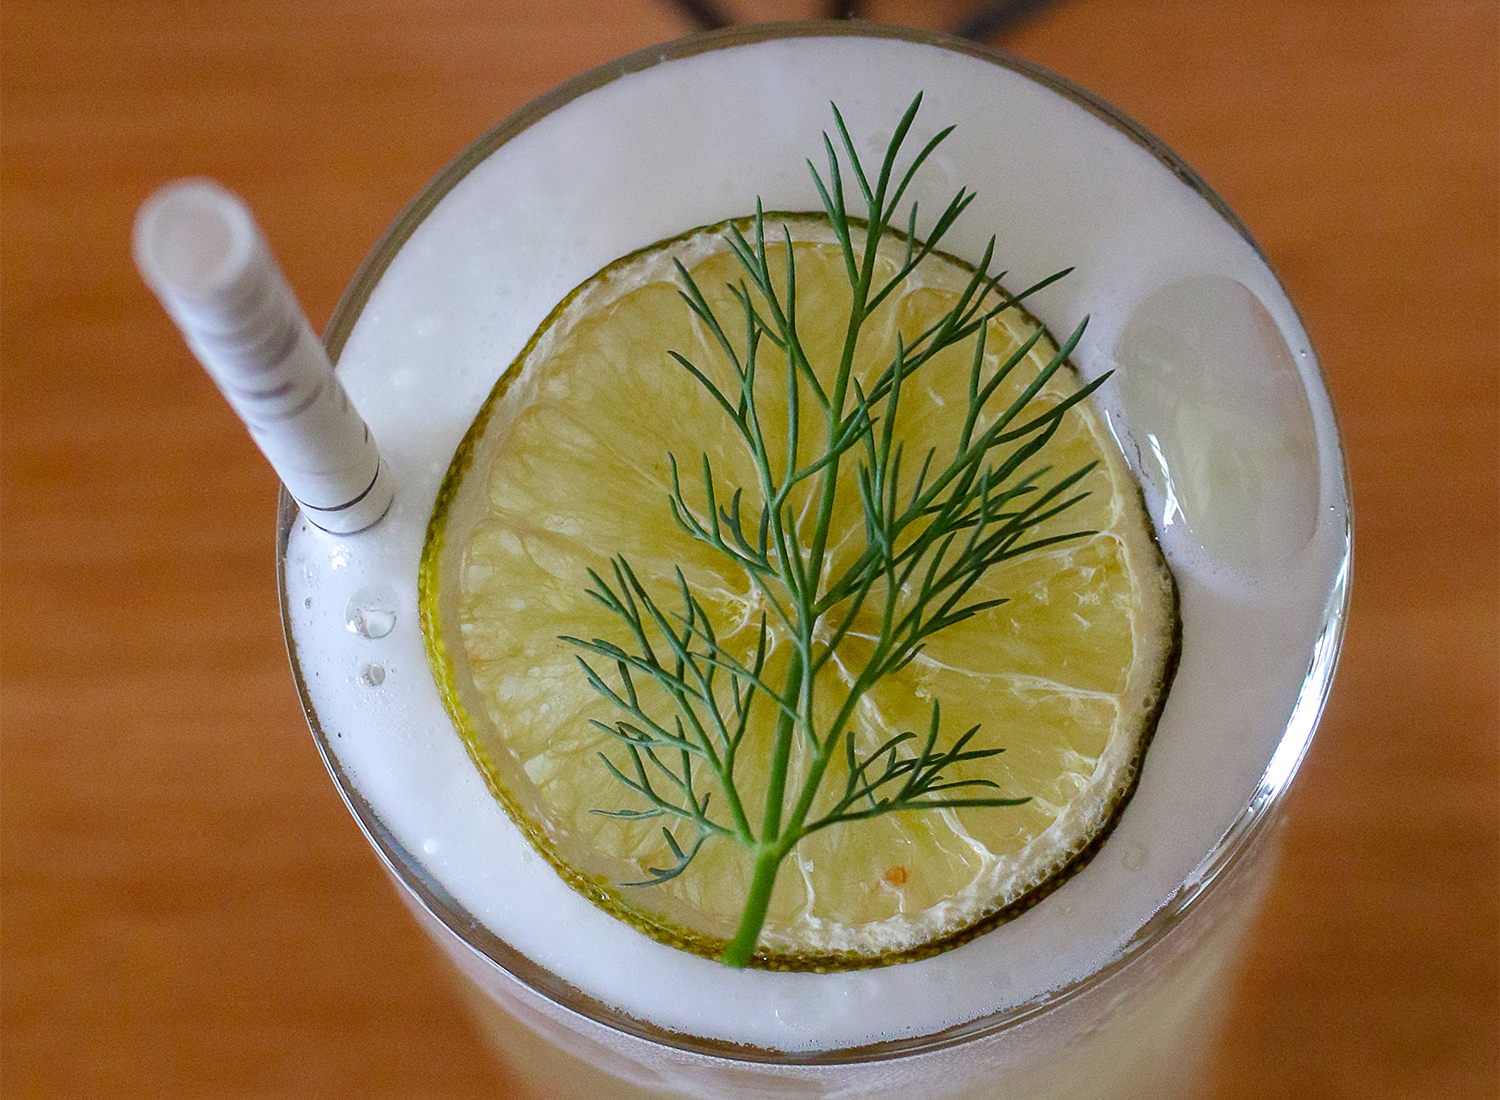 Farralon Fizz with gin, aloe liqueur, cucumber shrub, lime, limoncello, dill foam at Perch + Plow restaurant in Santa Rosa.